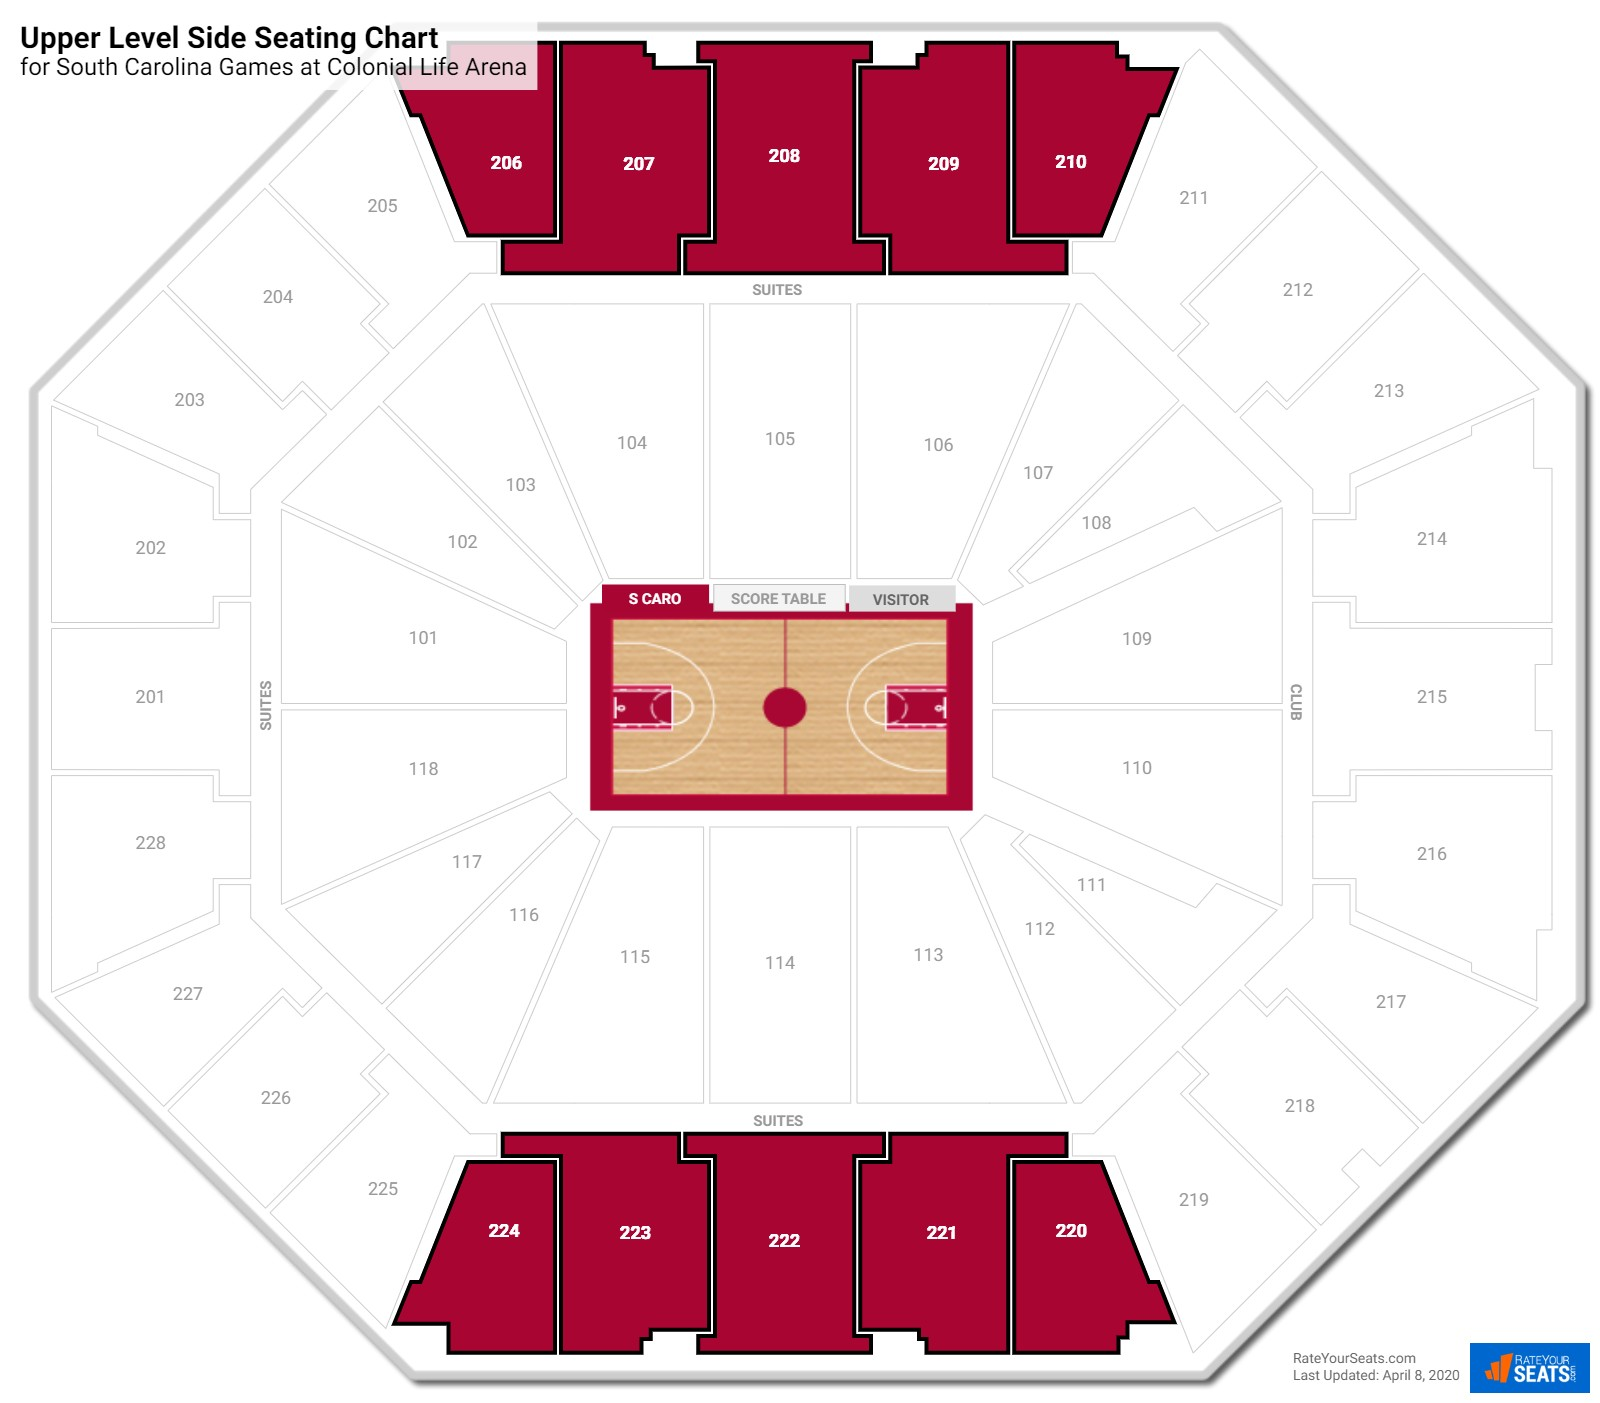 hight resolution of colonial life arena upper level side seating chart